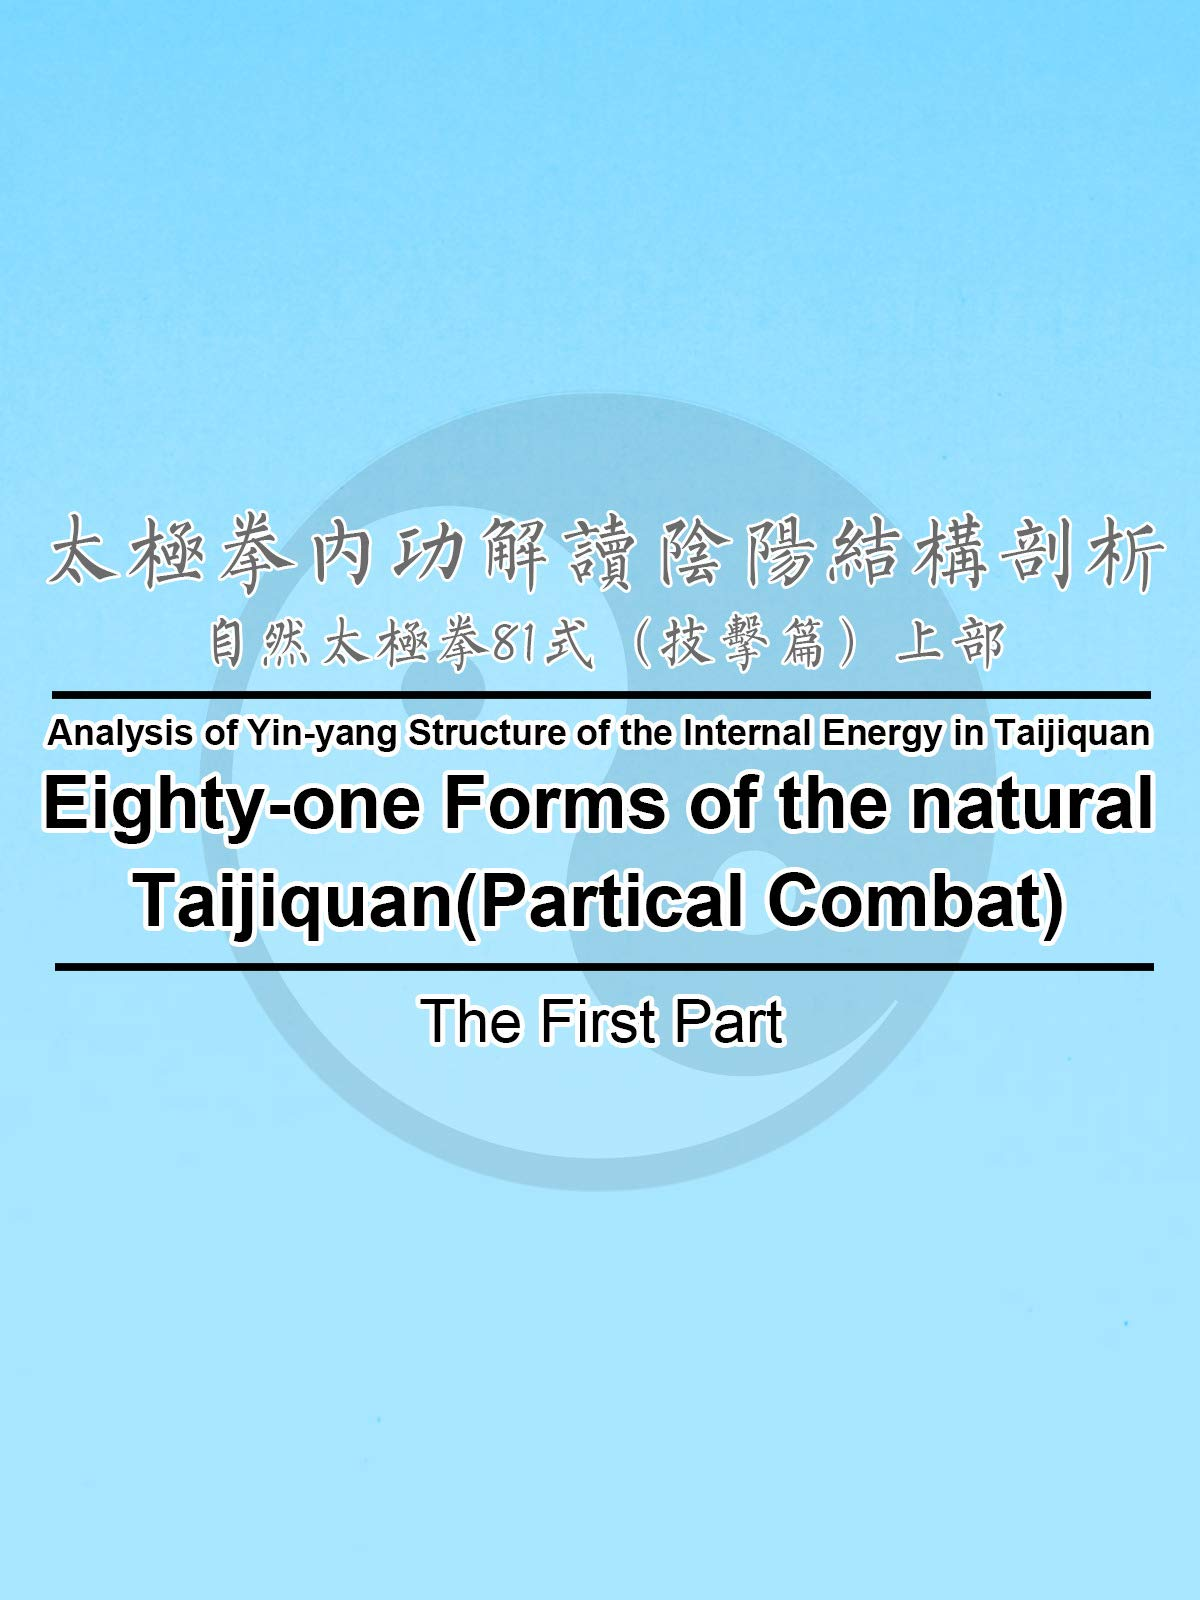 Eighty-one Forms of the Natural Taijiquan(Partical Combat)-The First Part